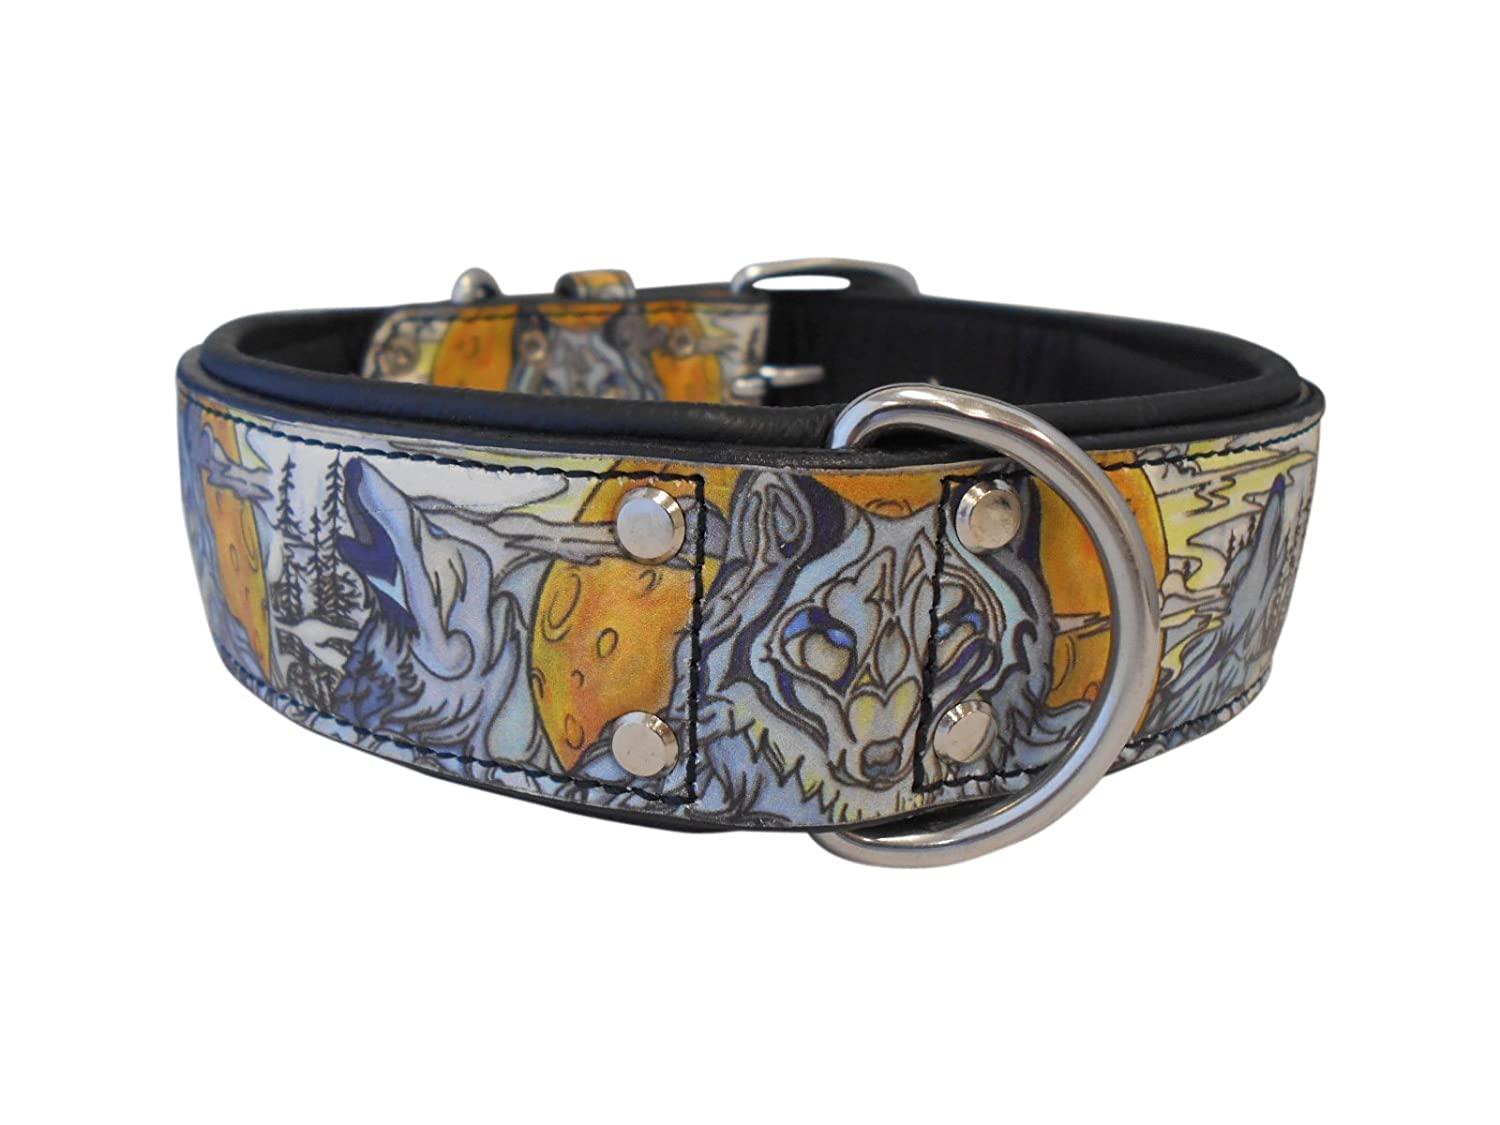 Angel Pet Supplies 70017 Wolf's Den Leather Dog Collar, 24  X 1.5 , Midnight Black